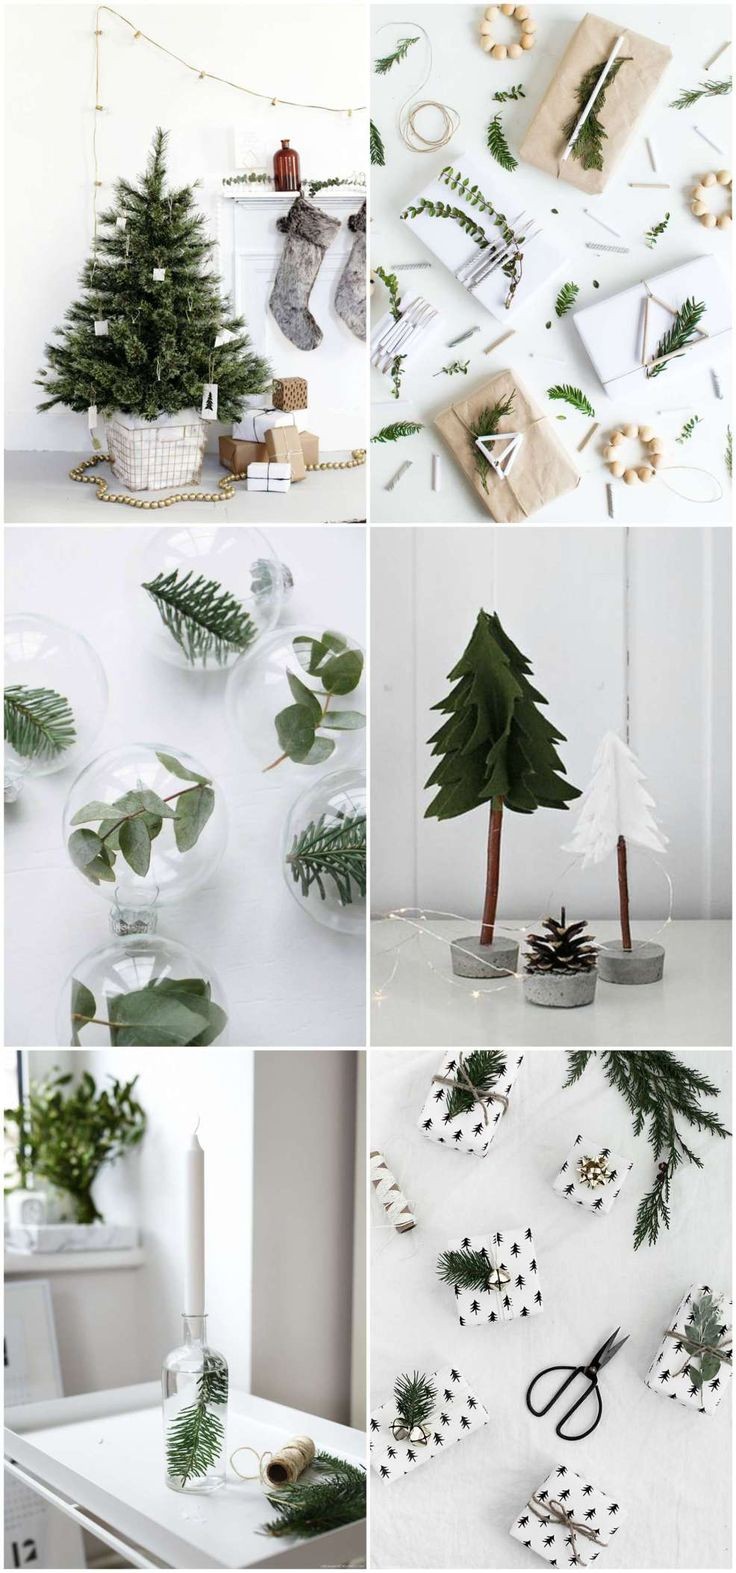 Uncategorized Modern Xmas Decorations 25 unique modern christmas decor ideas on pinterest 10 diy projects